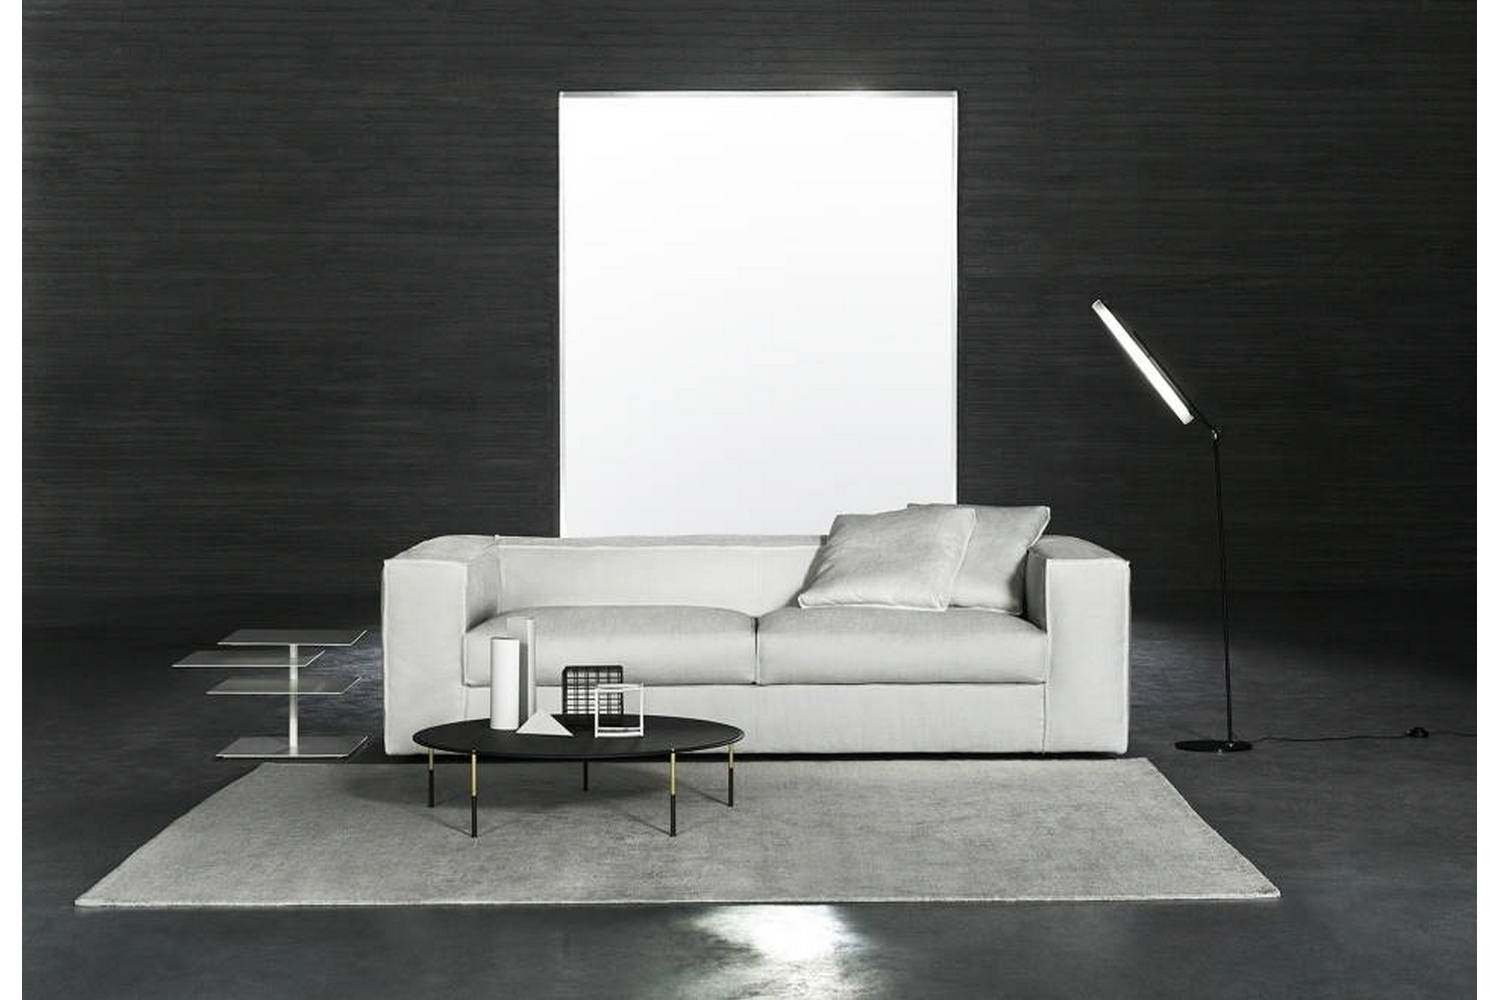 Living Divani Neowall Sofa Bed Neowall Sofa Bed By Piero Lissoni For Living Divani Space